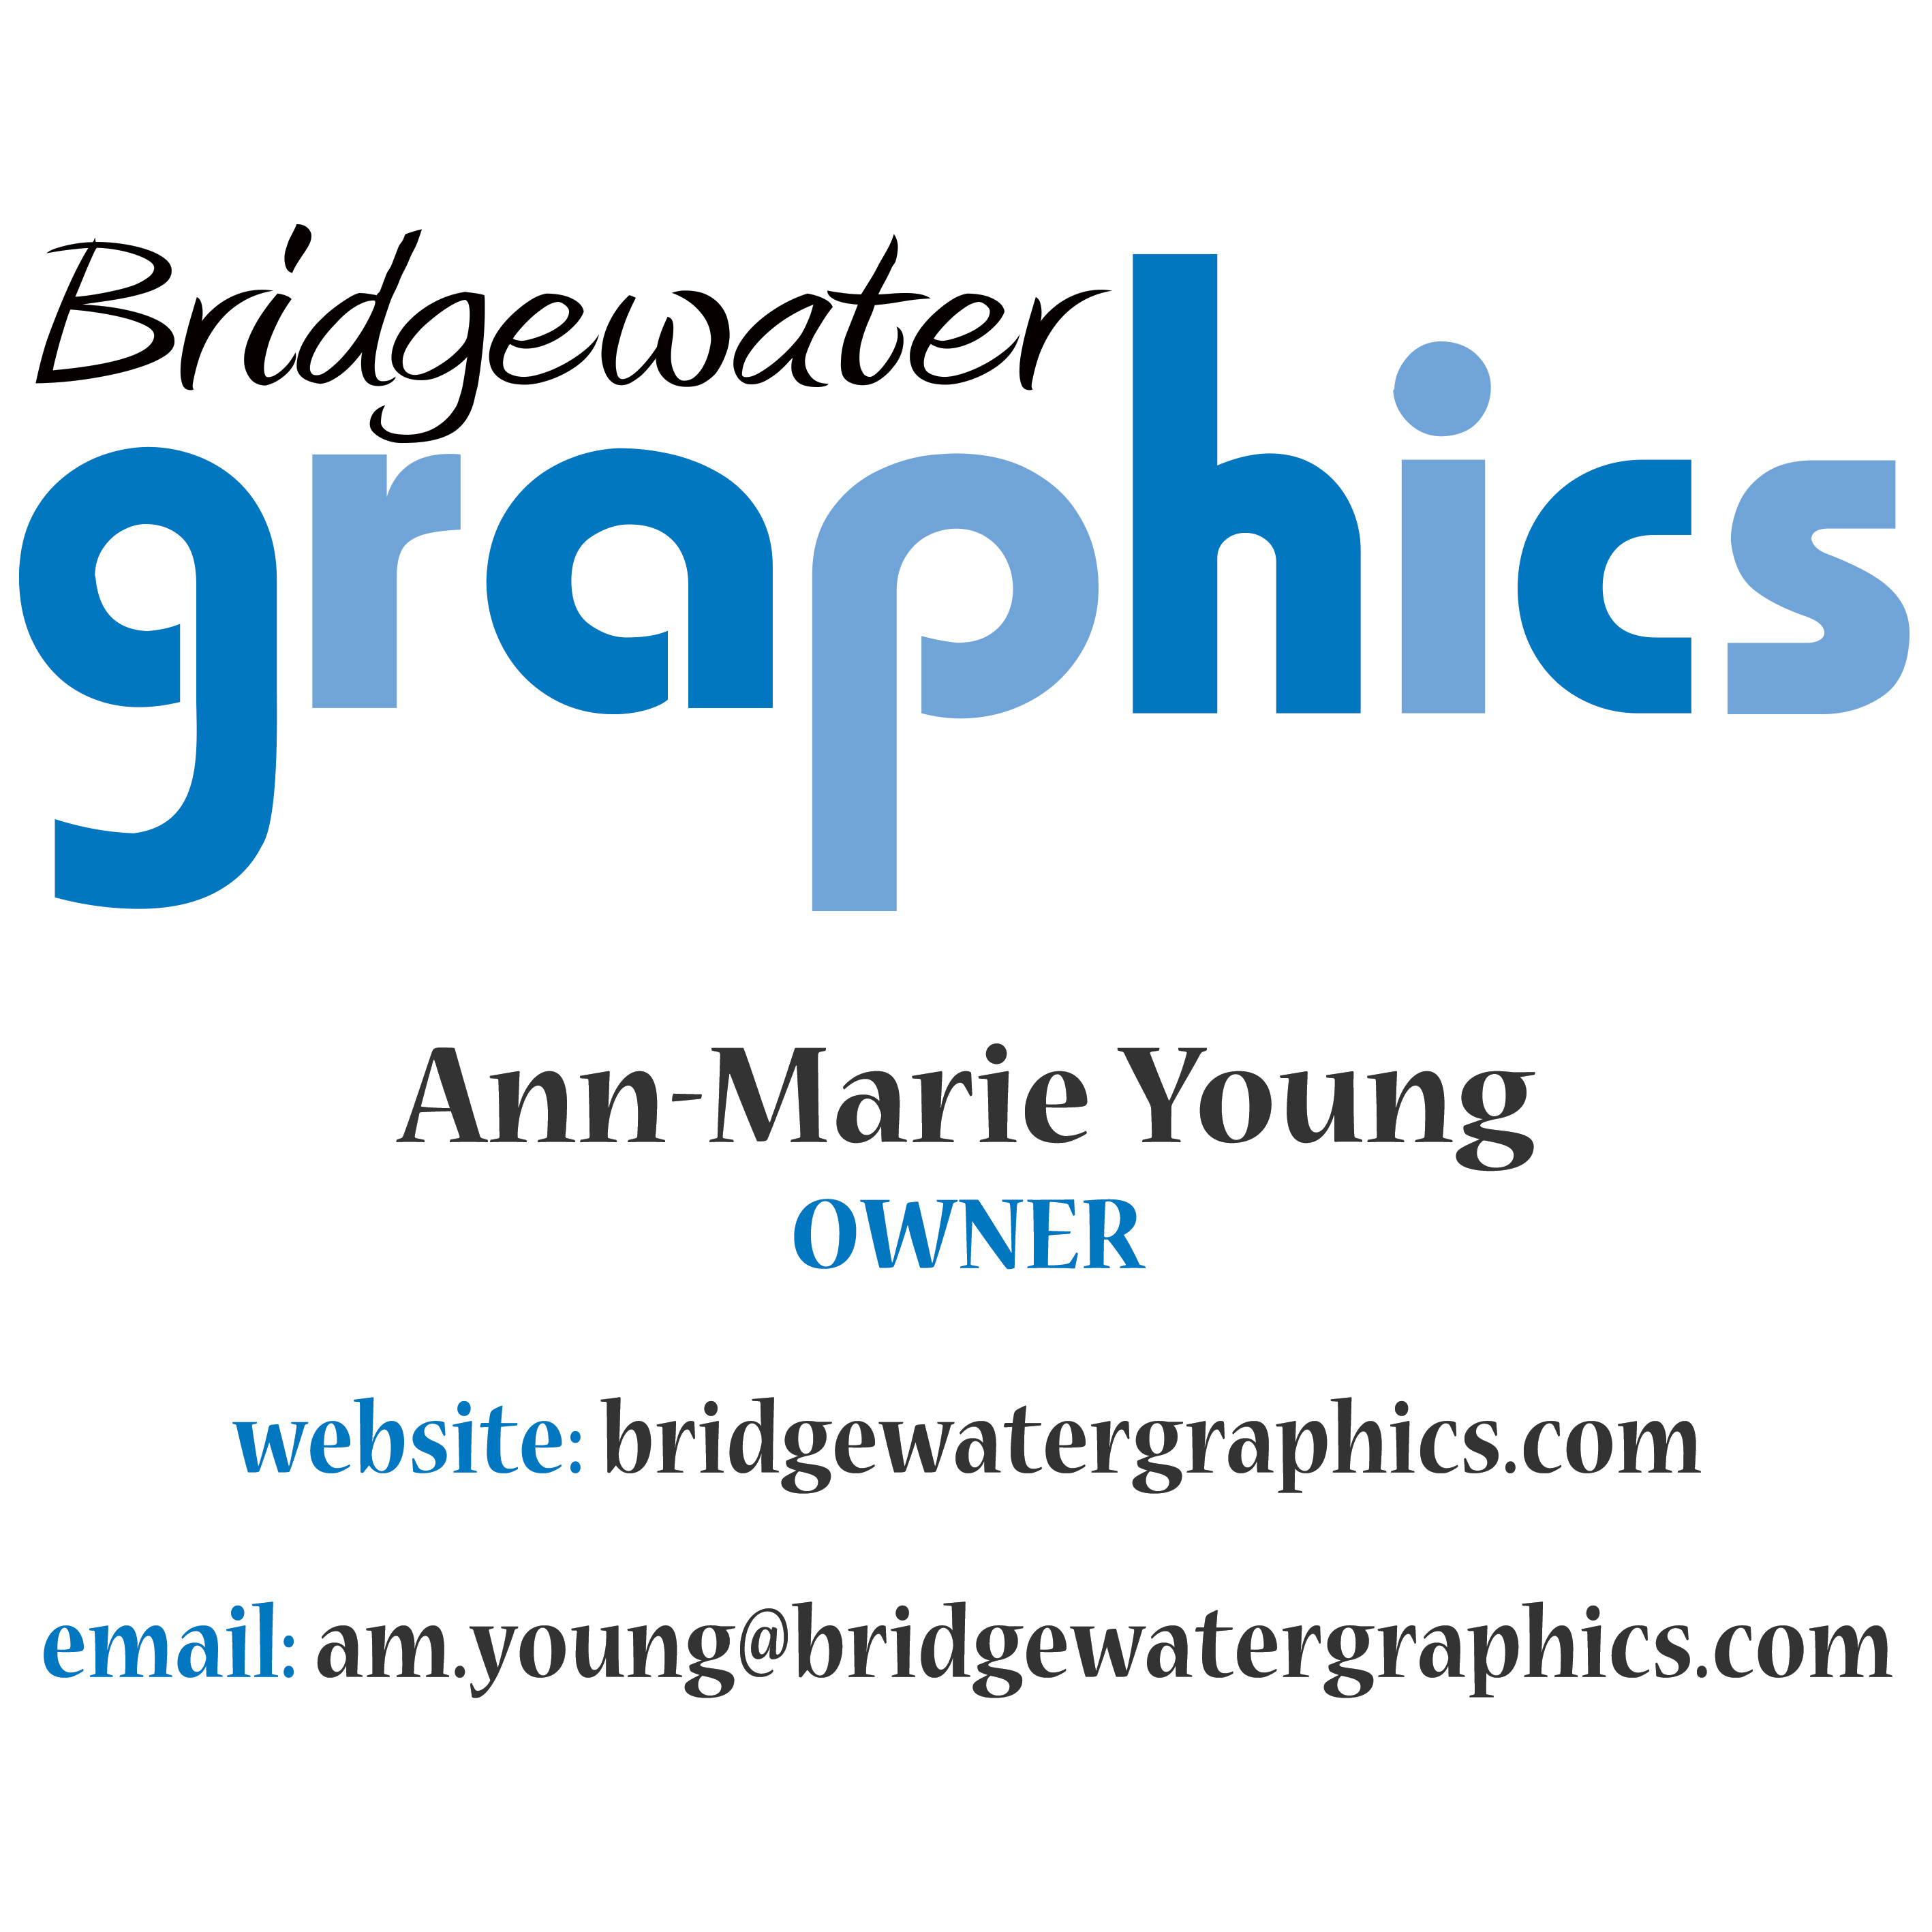 Bridgewater Graphics